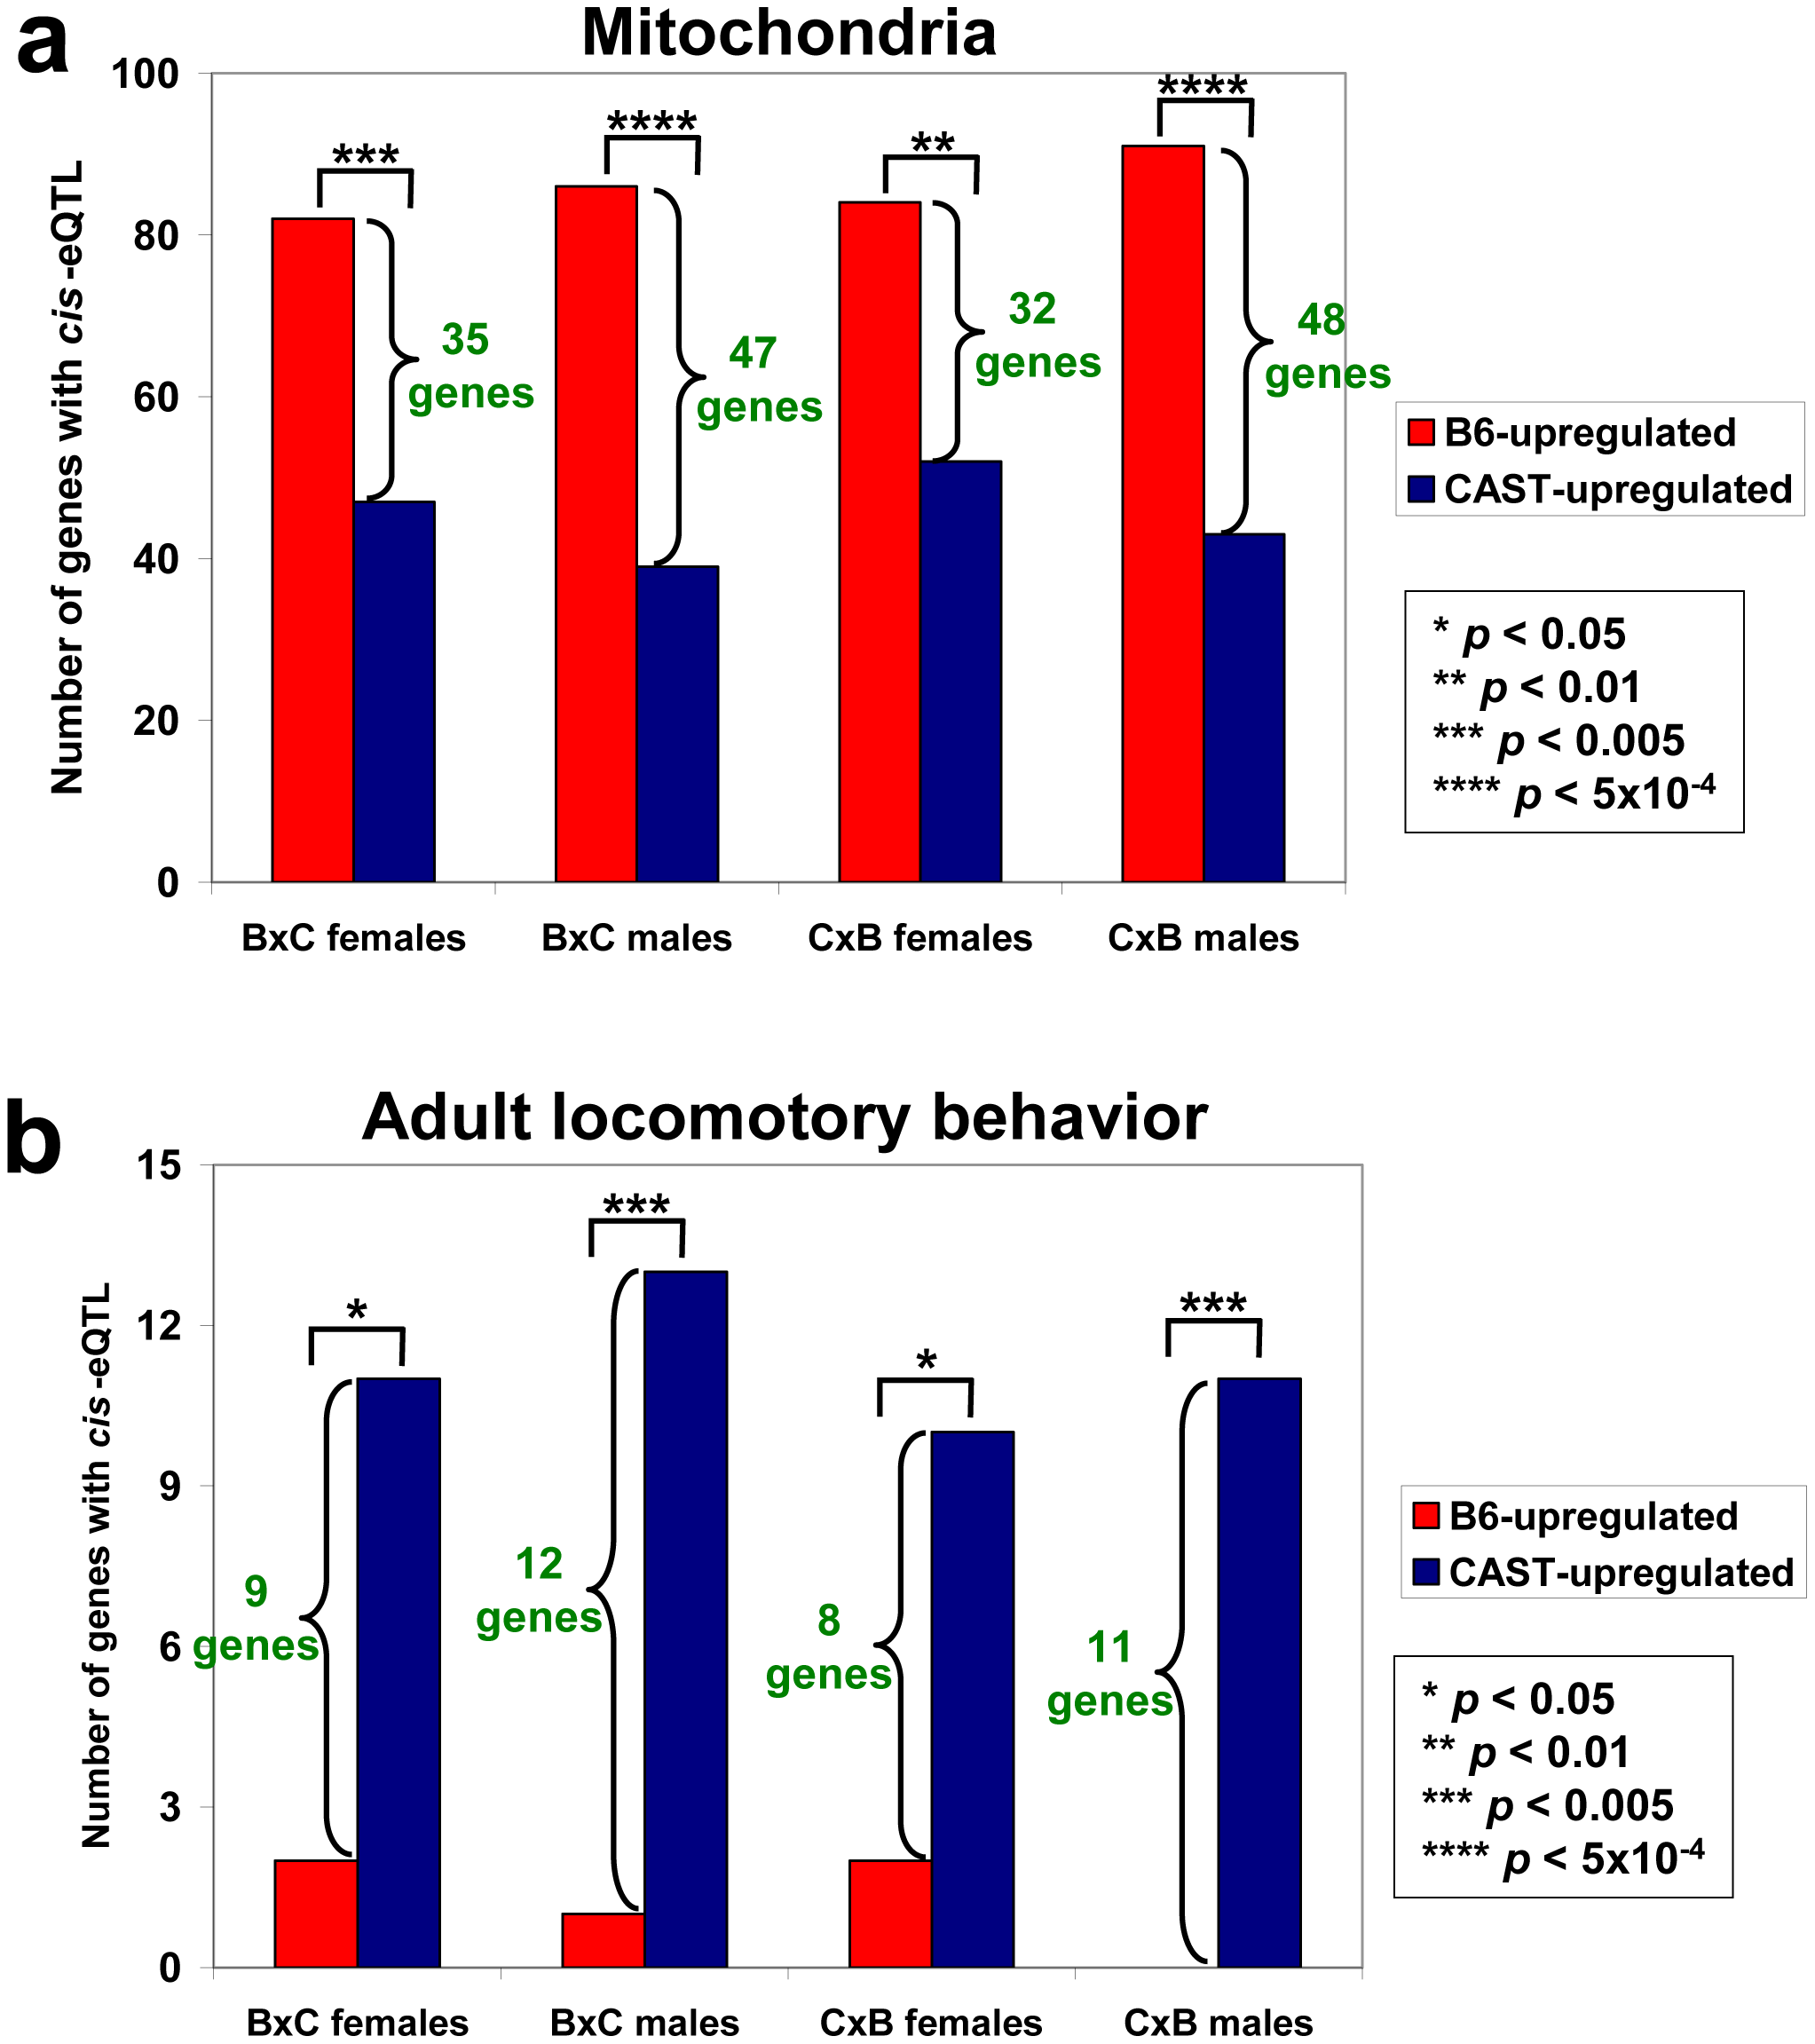 Results of the selection test for two gene sets.